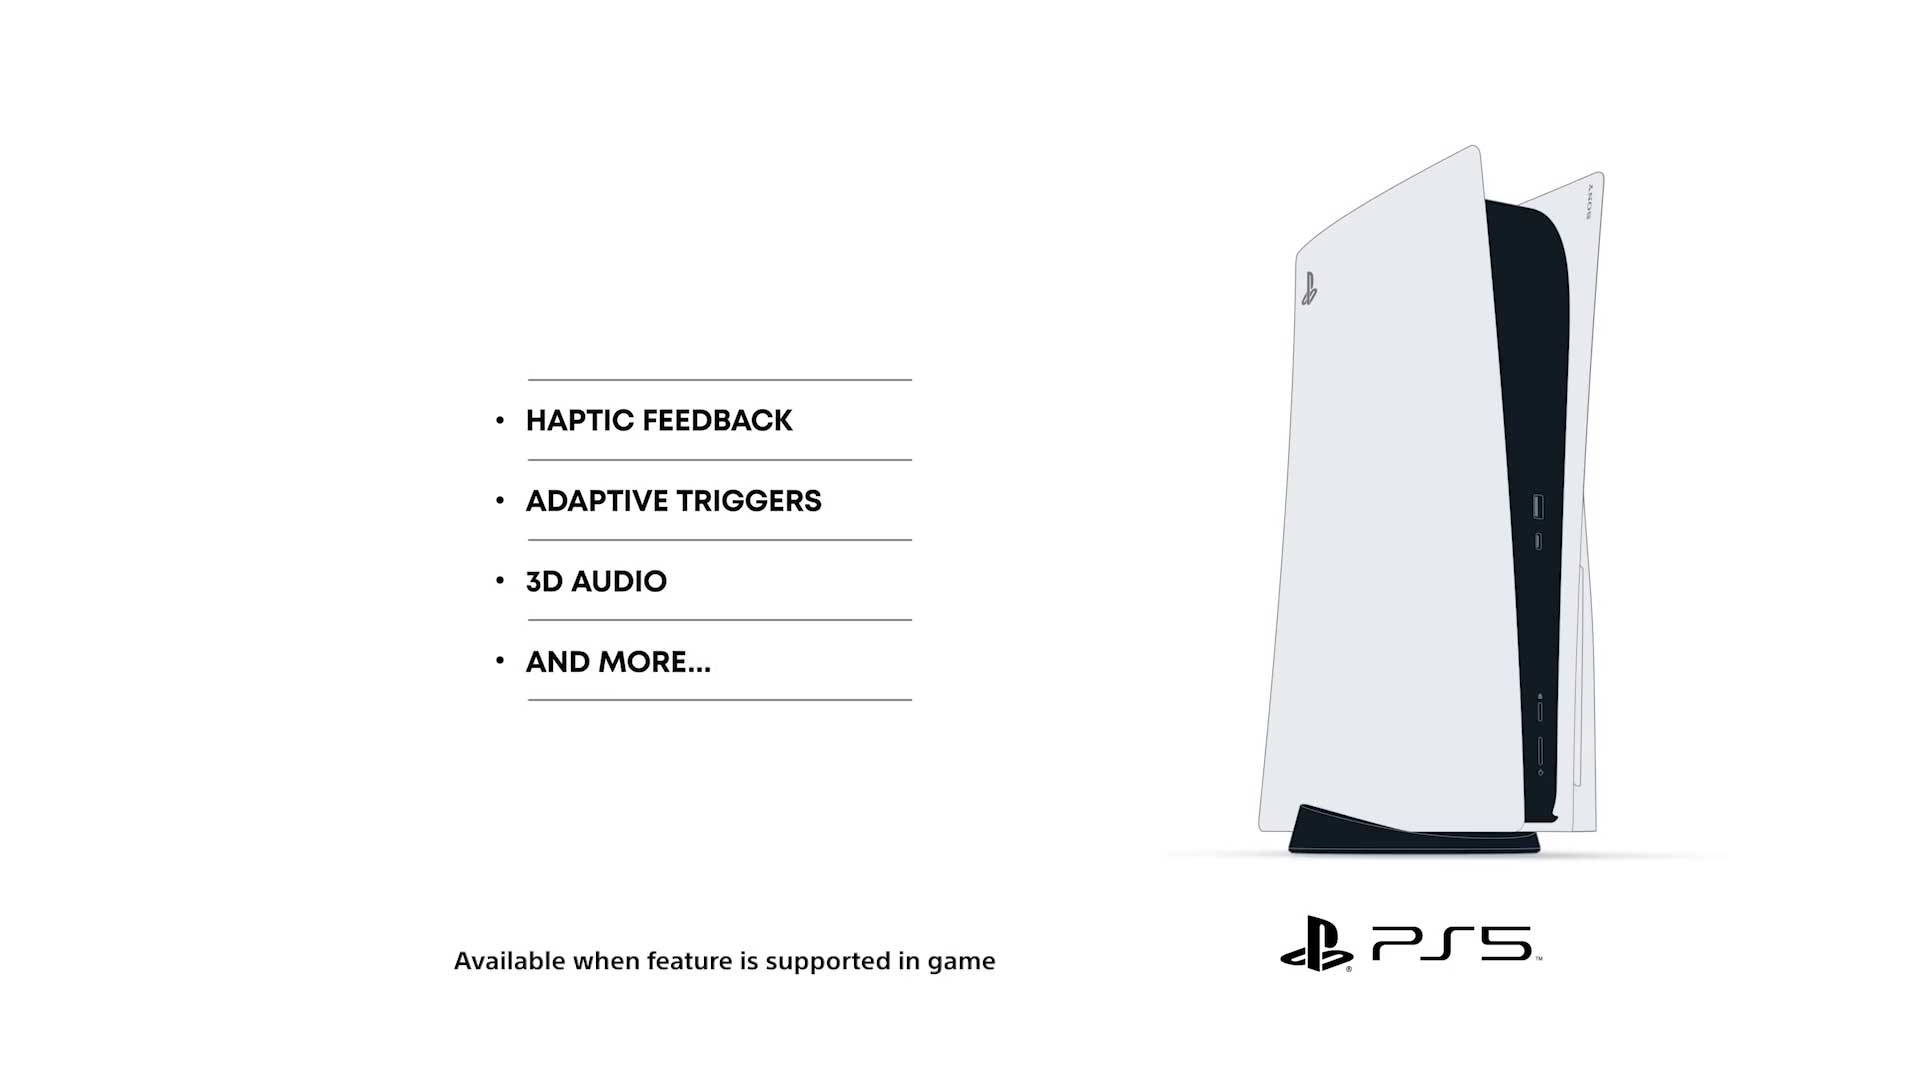 PlayStation 5 Settings and Features